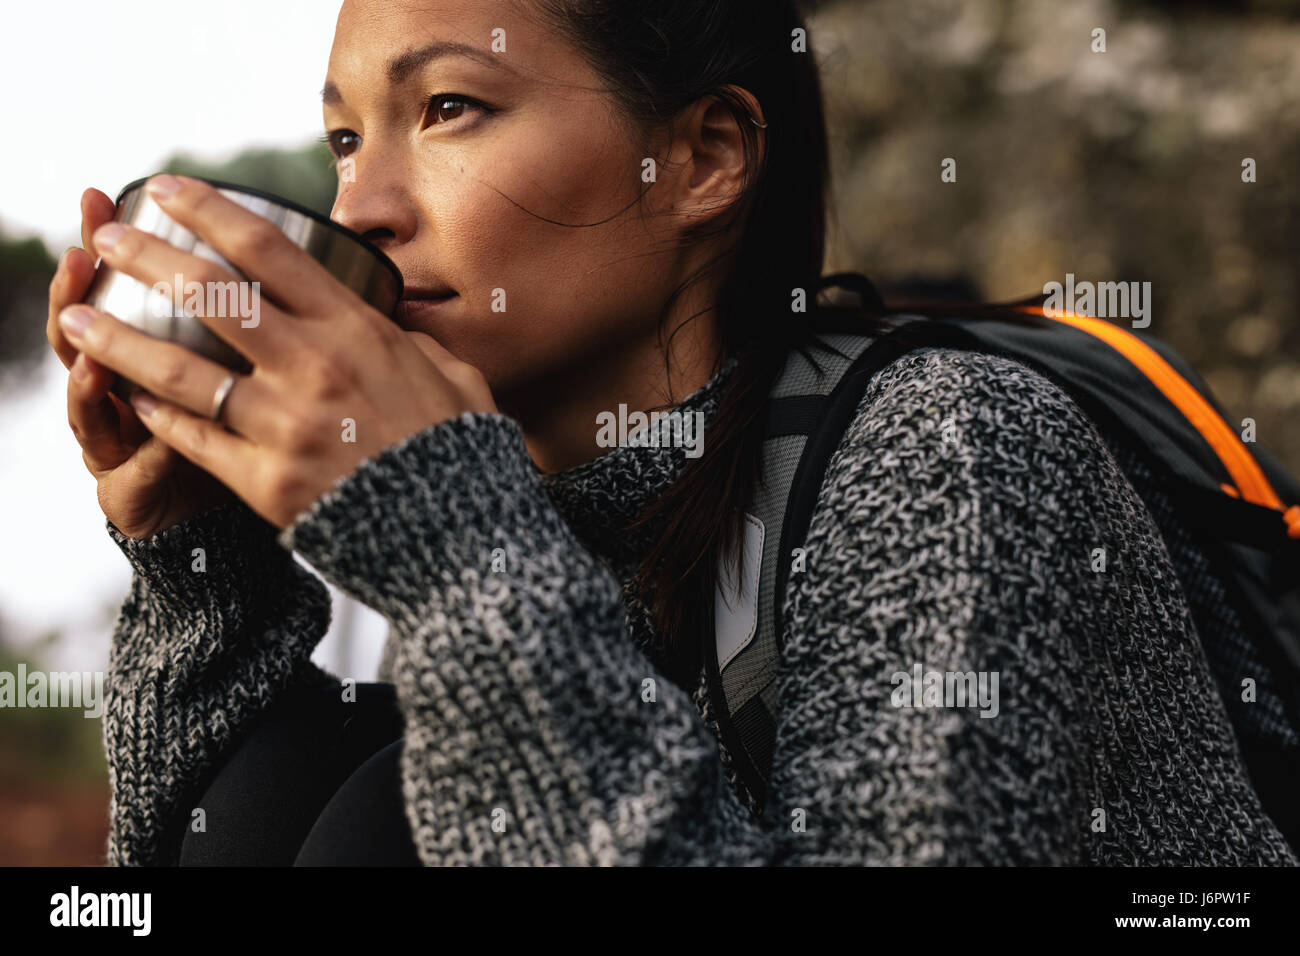 Close up shot of young female hiker drinking coffee. Female hiker taking break during hike. - Stock Image